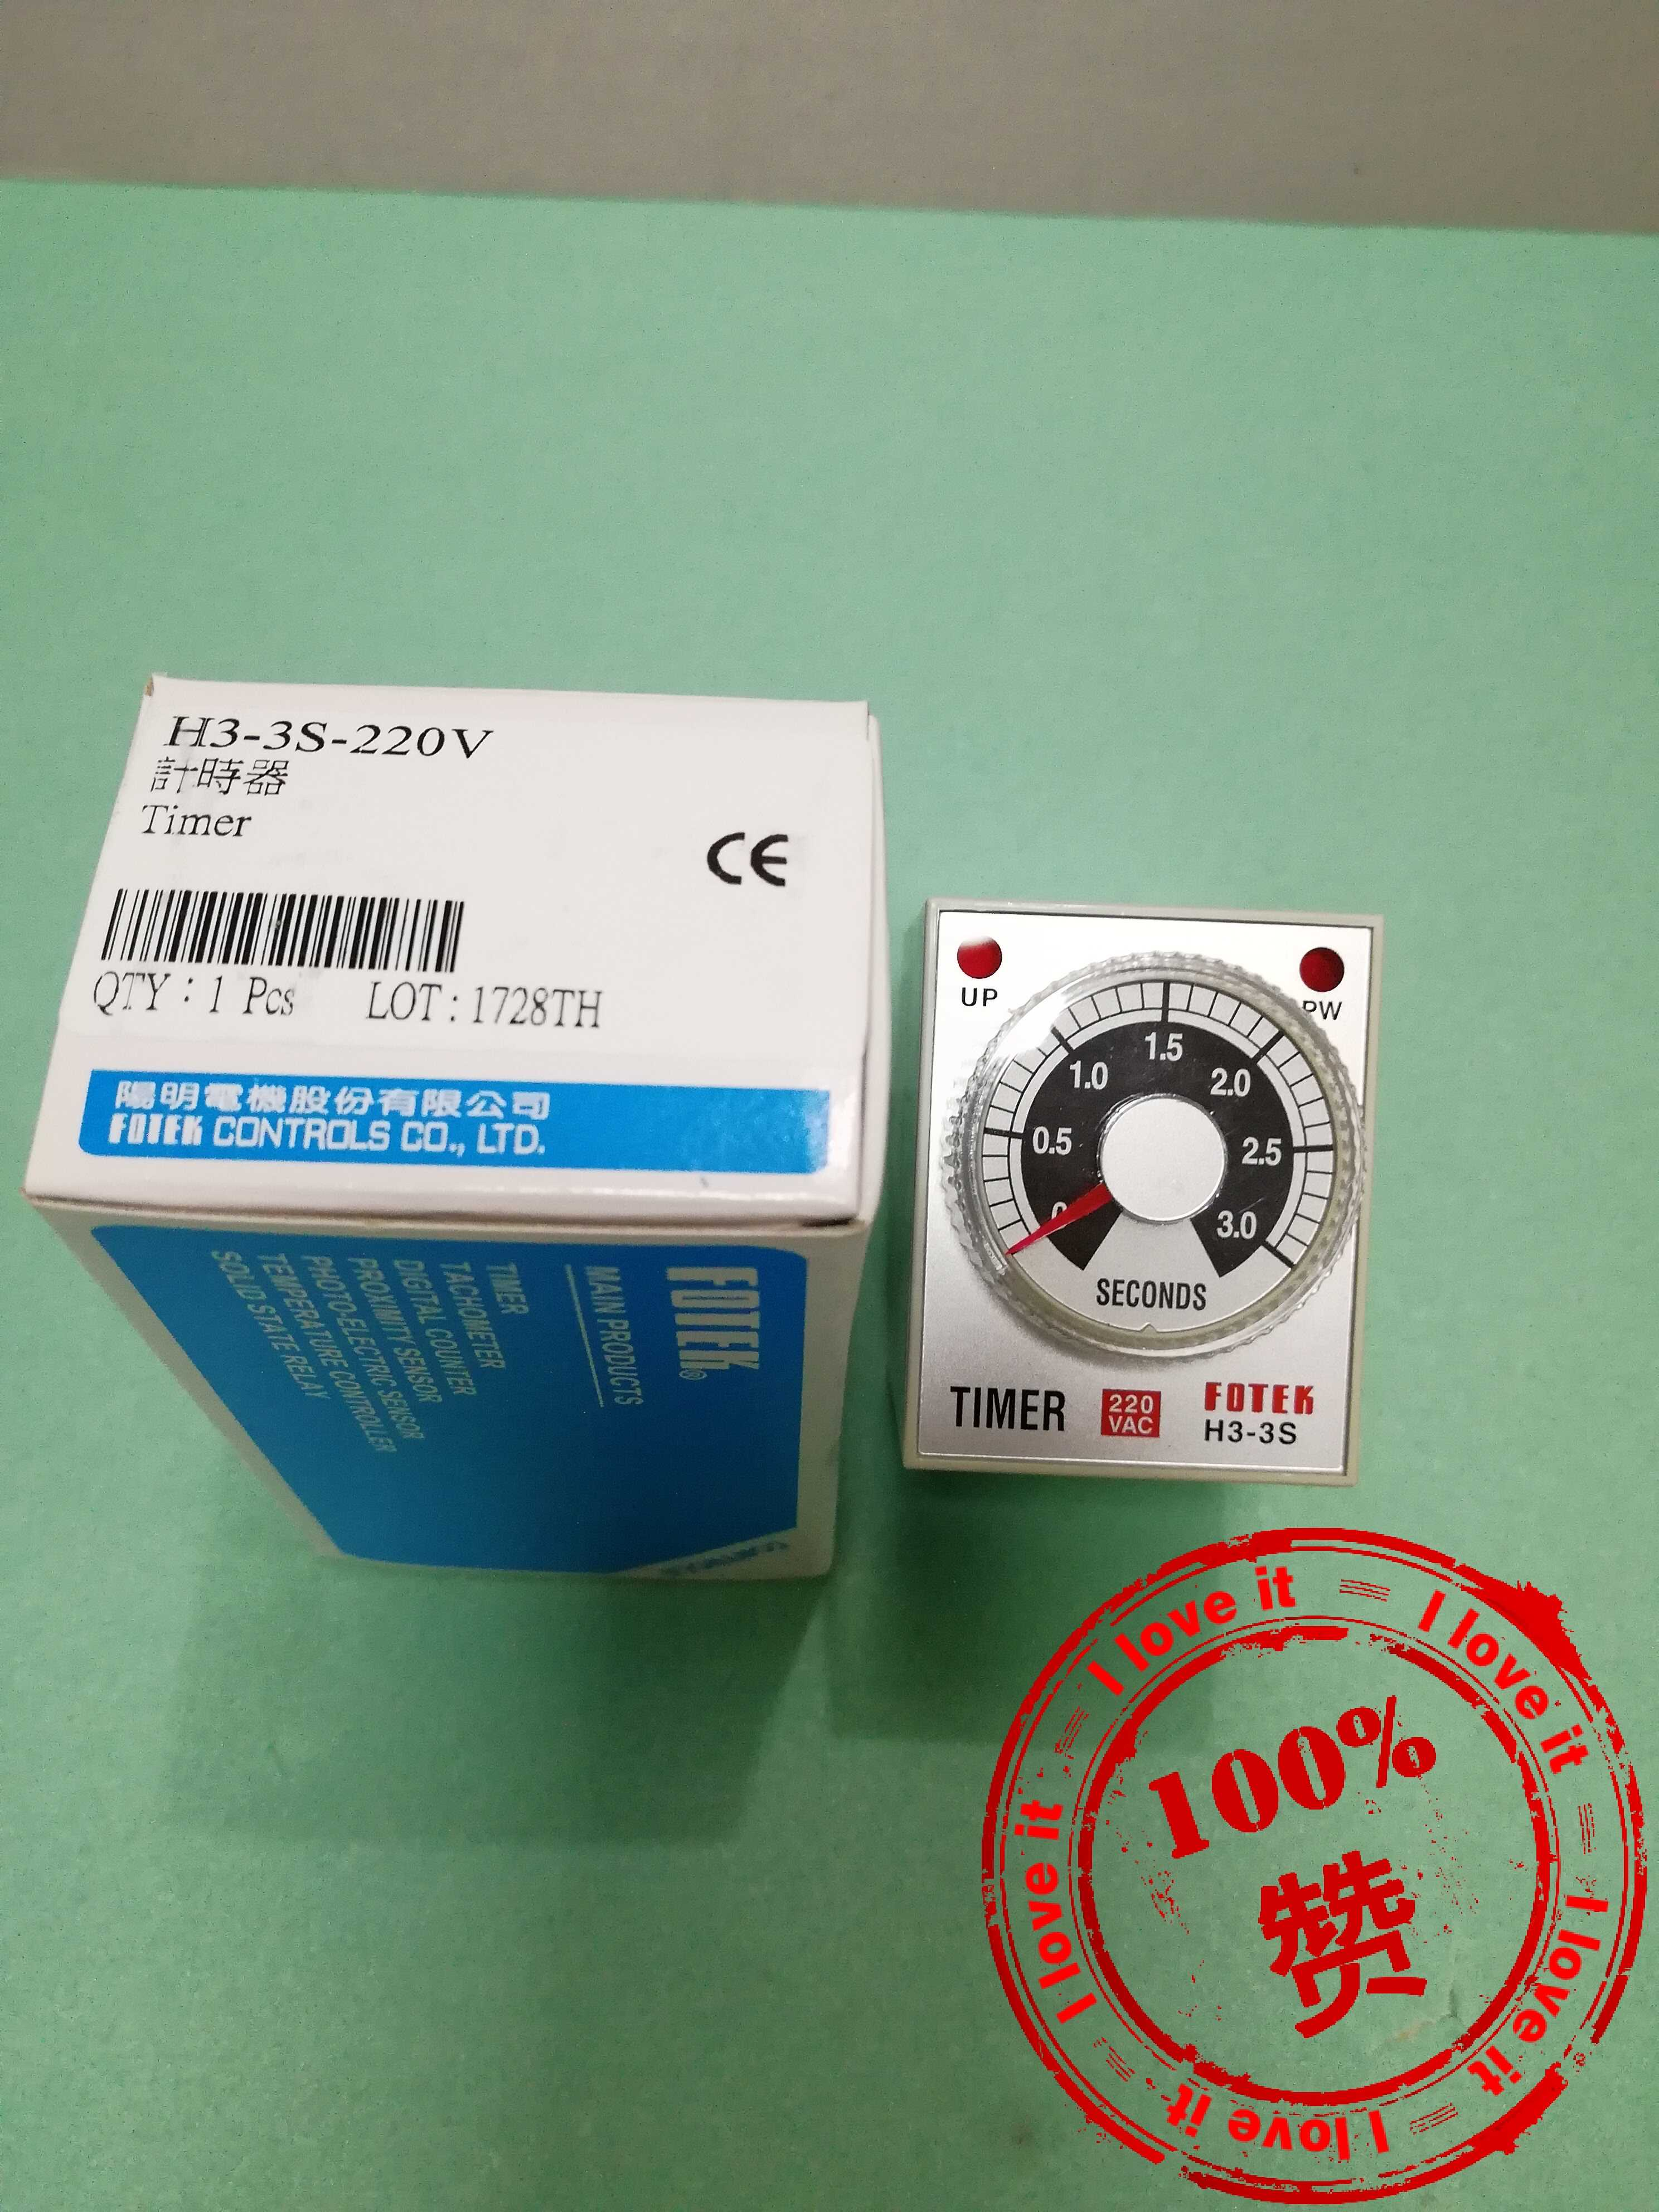 100% New Original timer H3-3S-220V Time relay 1 sec100% New Original timer H3-3S-220V Time relay 1 sec